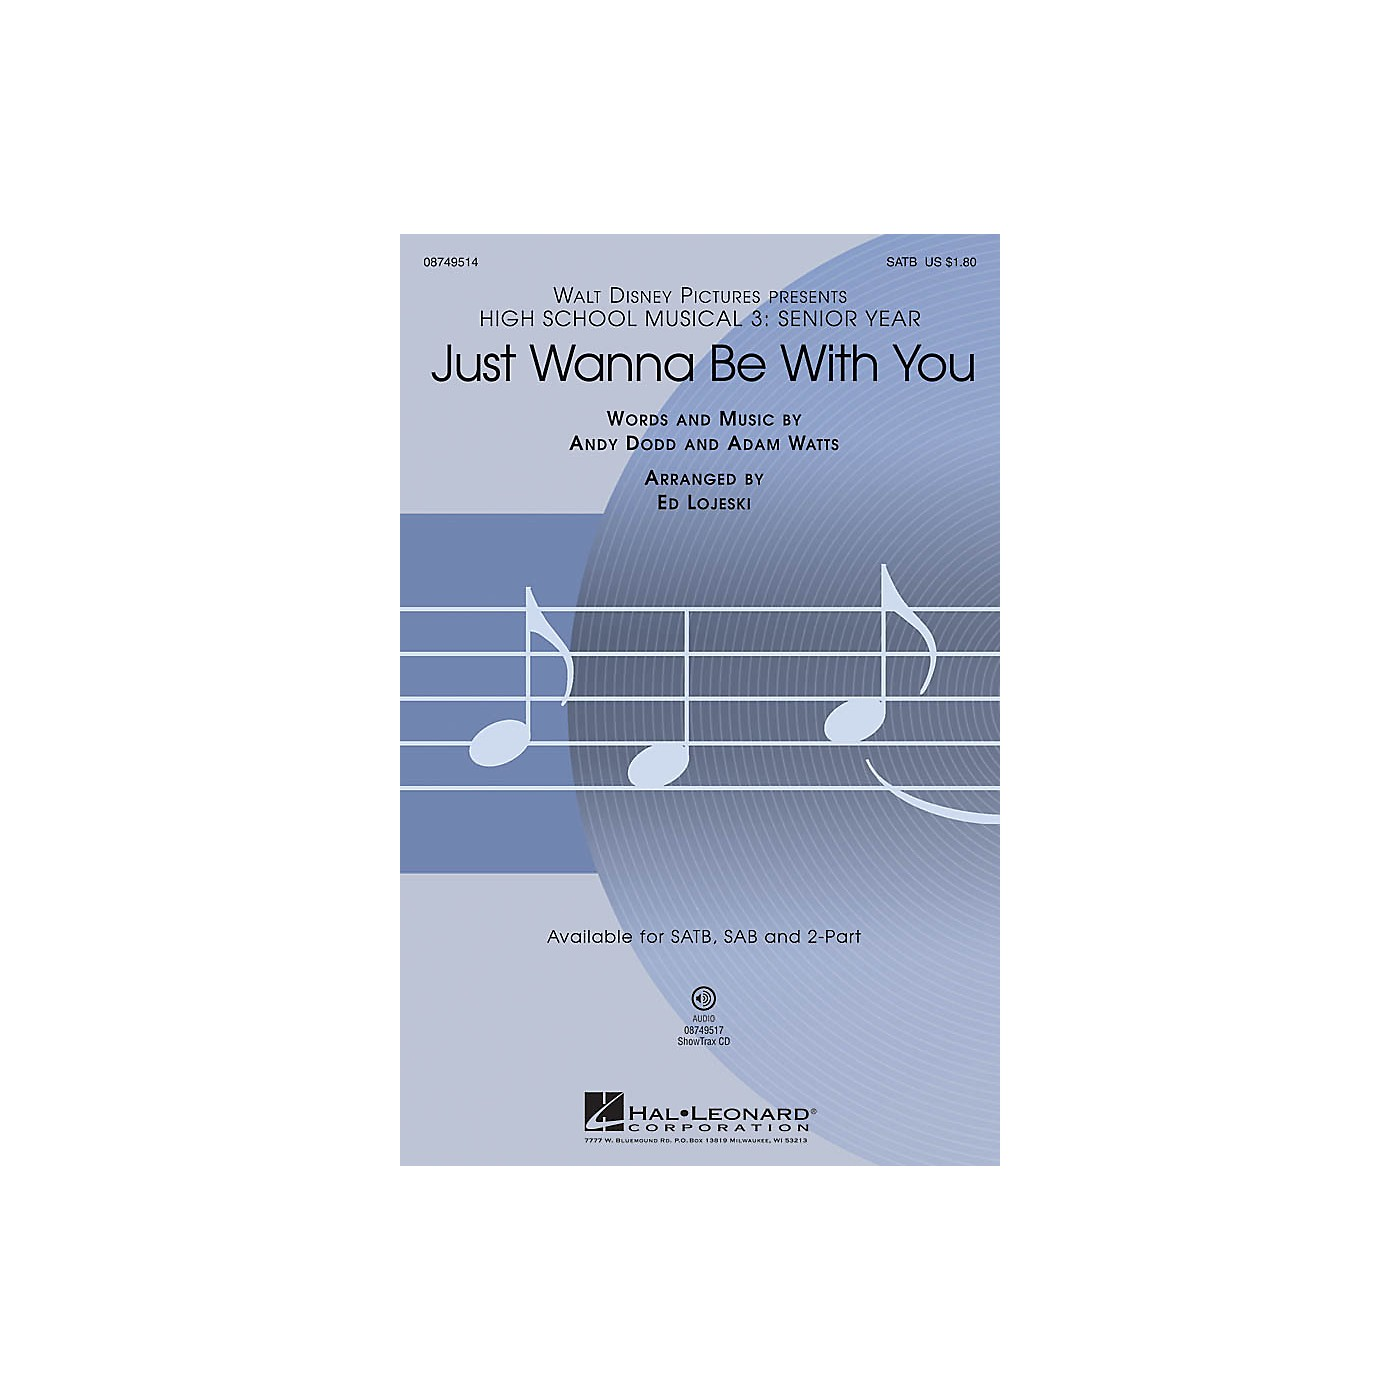 Hal Leonard Just Wanna Be with You (from High School Musical 3) ShowTrax CD Arranged by Ed Lojeski thumbnail